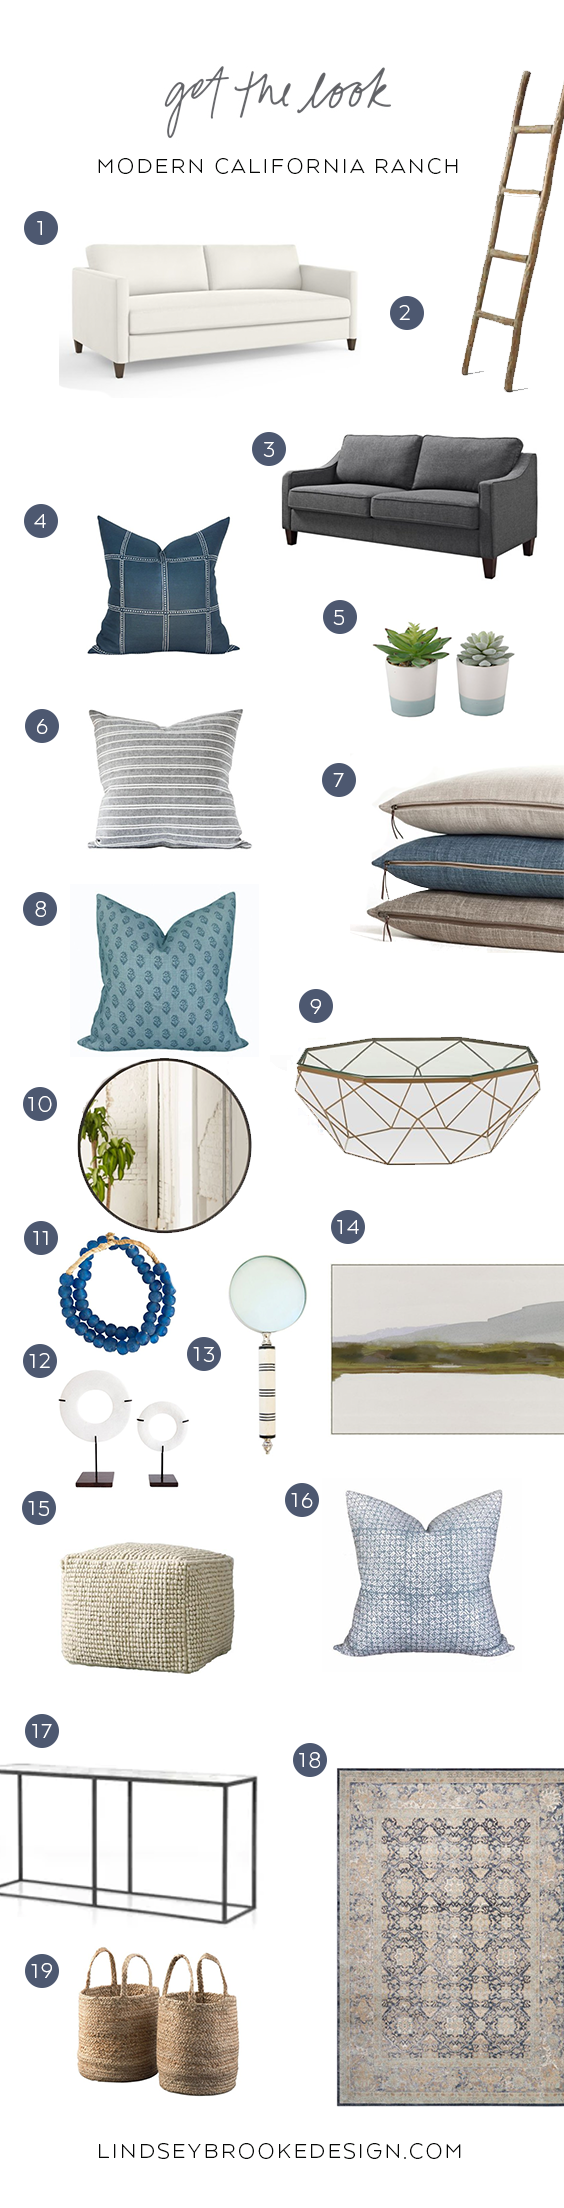 Get the look - Modern California Ranch.png